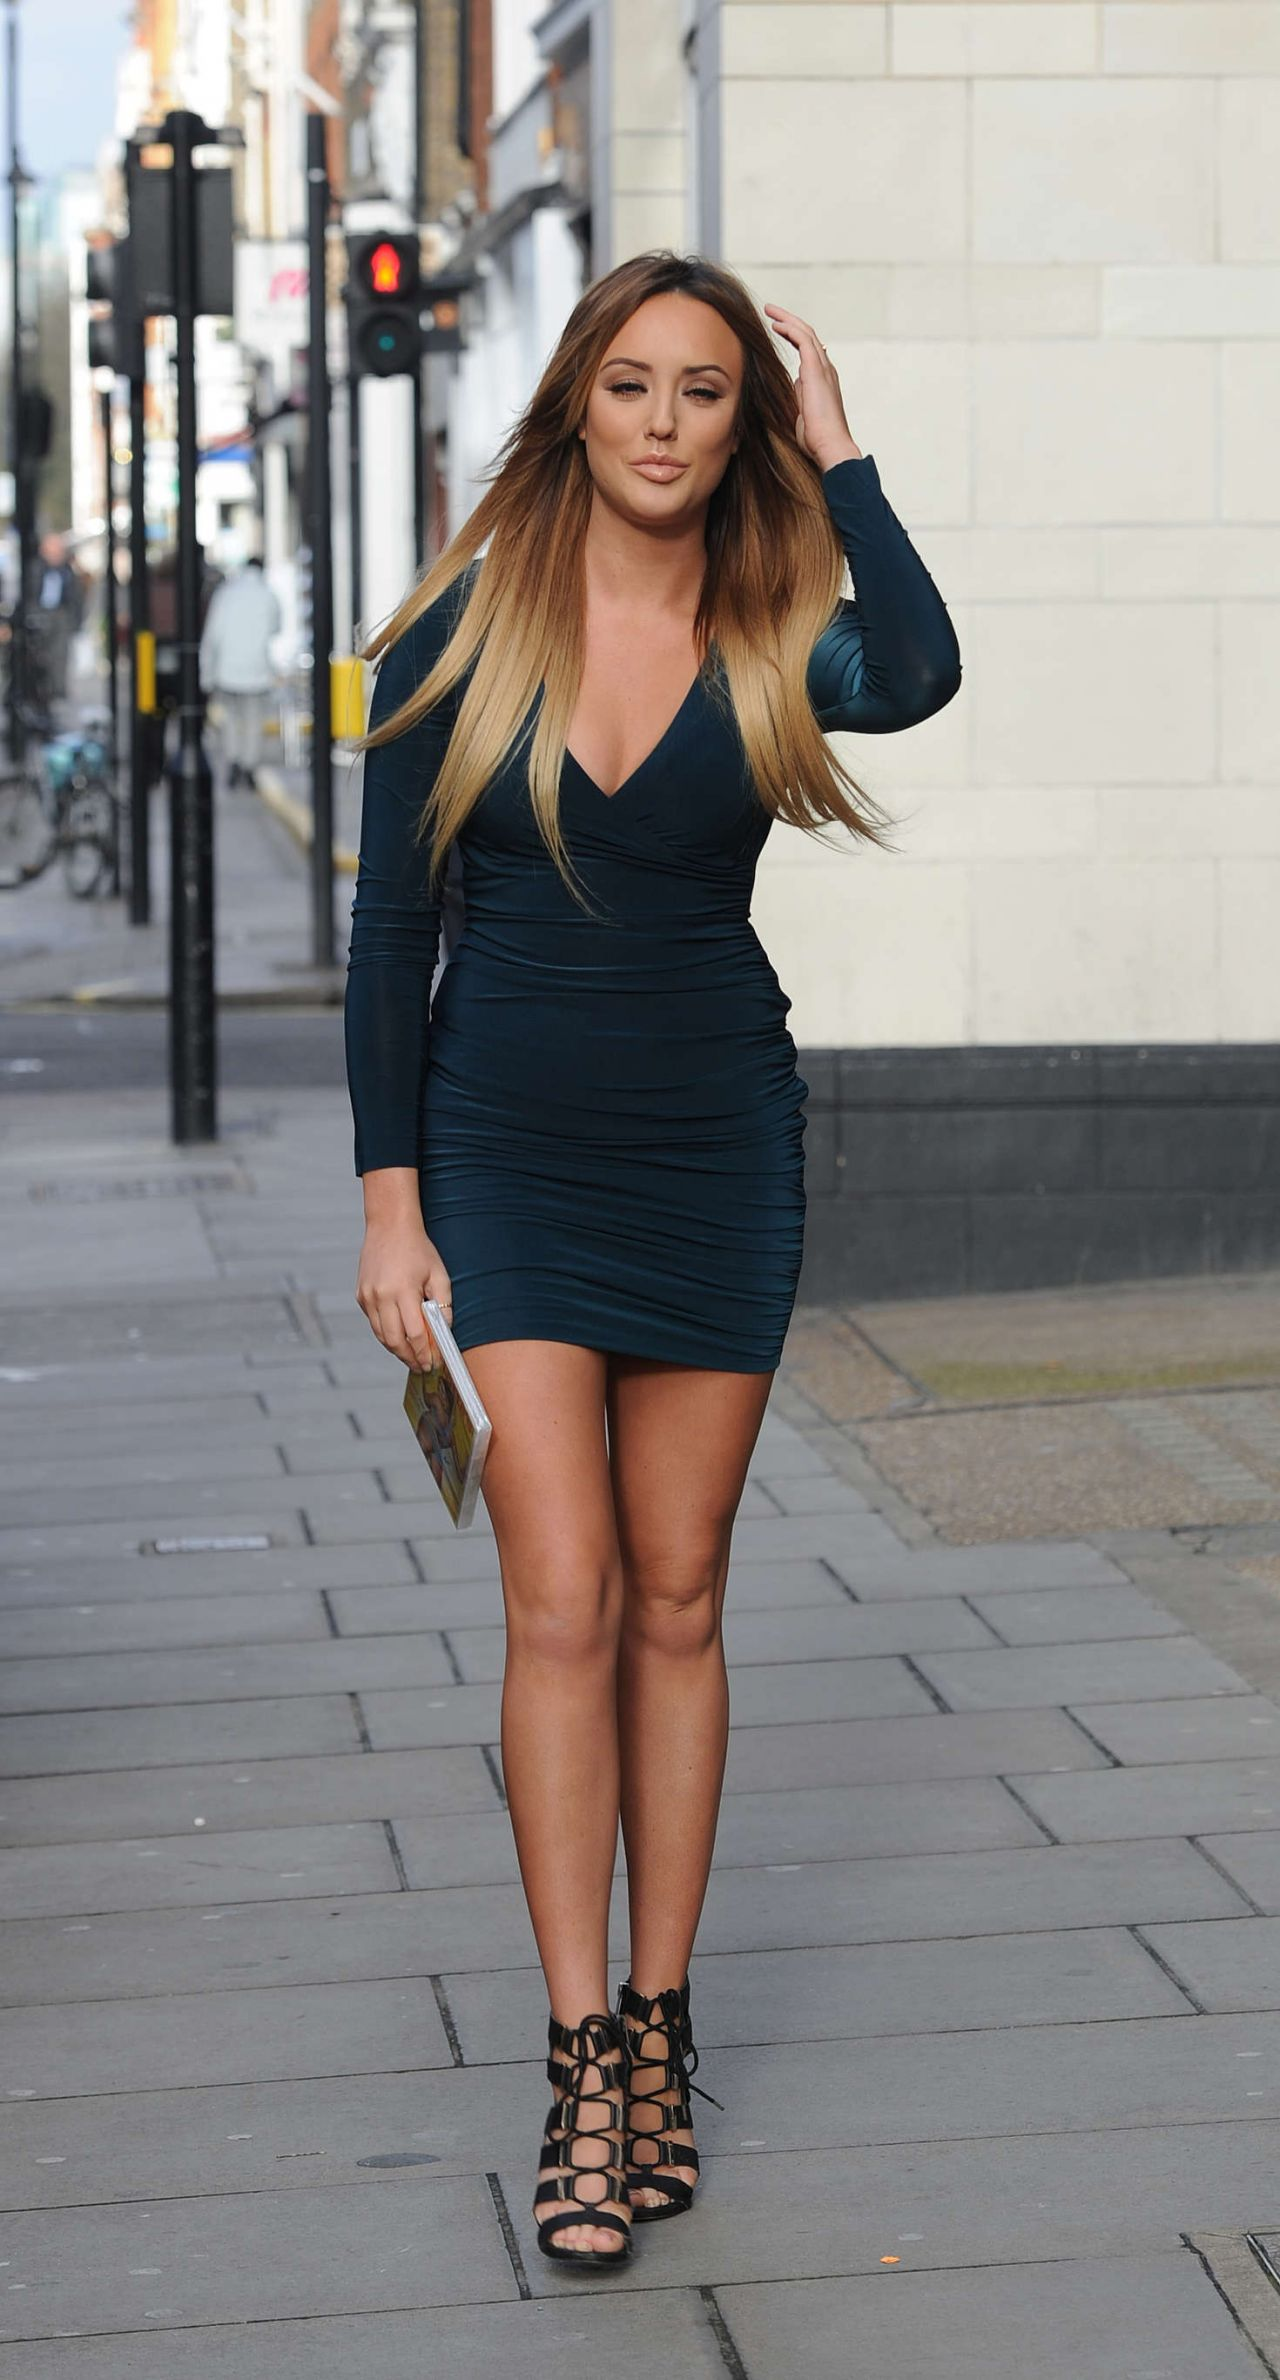 charlotte crosby hot in mini dress � promoting her fitness